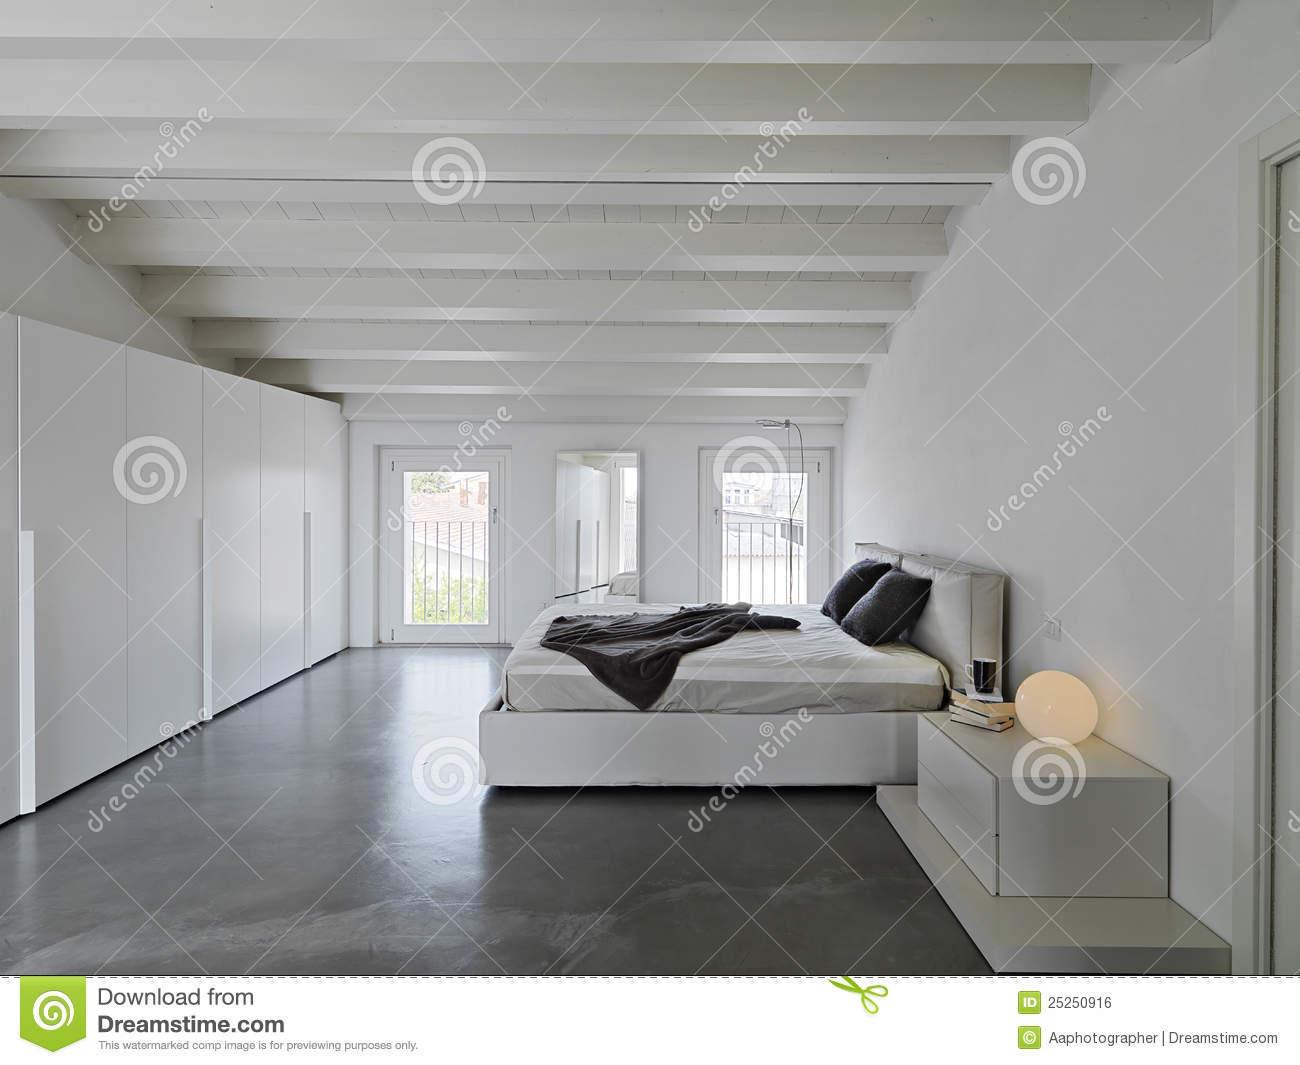 Modern bedroom in the attic rooms royalty free stock image - Maison peinte en gris ...